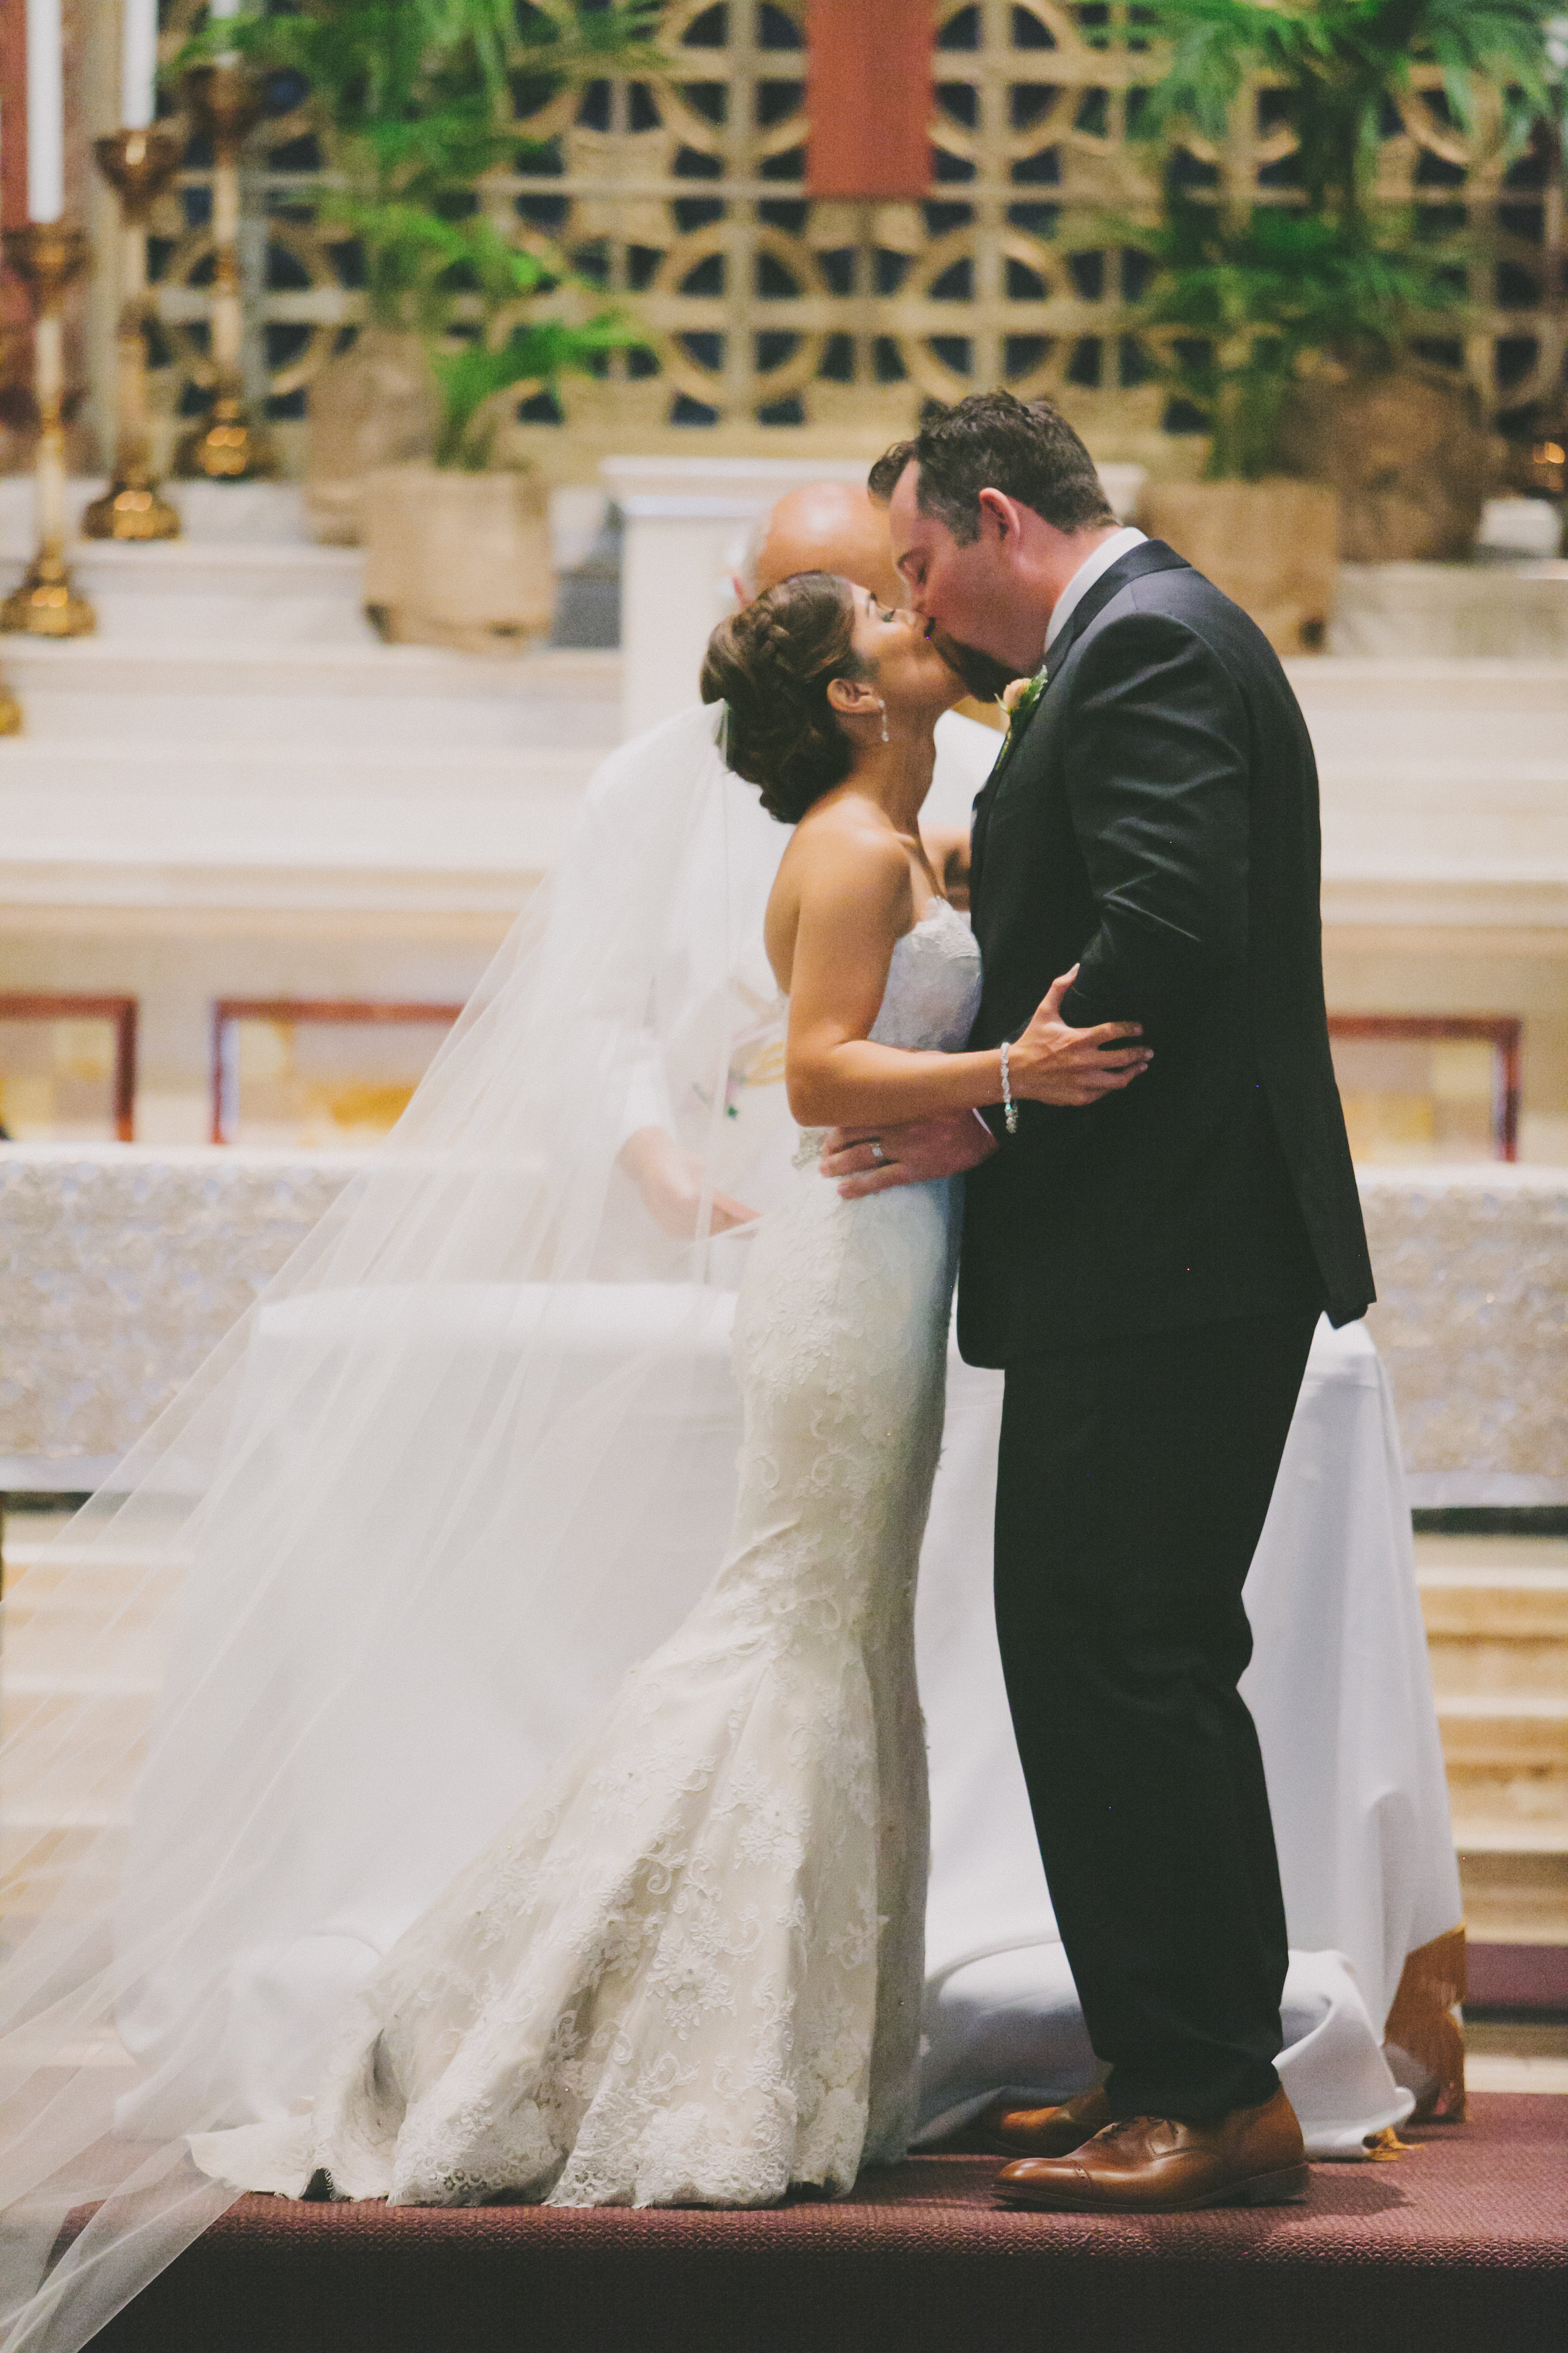 Carson Bianca Wedding by Jake and Necia Photography-08 ceremony-0199.jpg